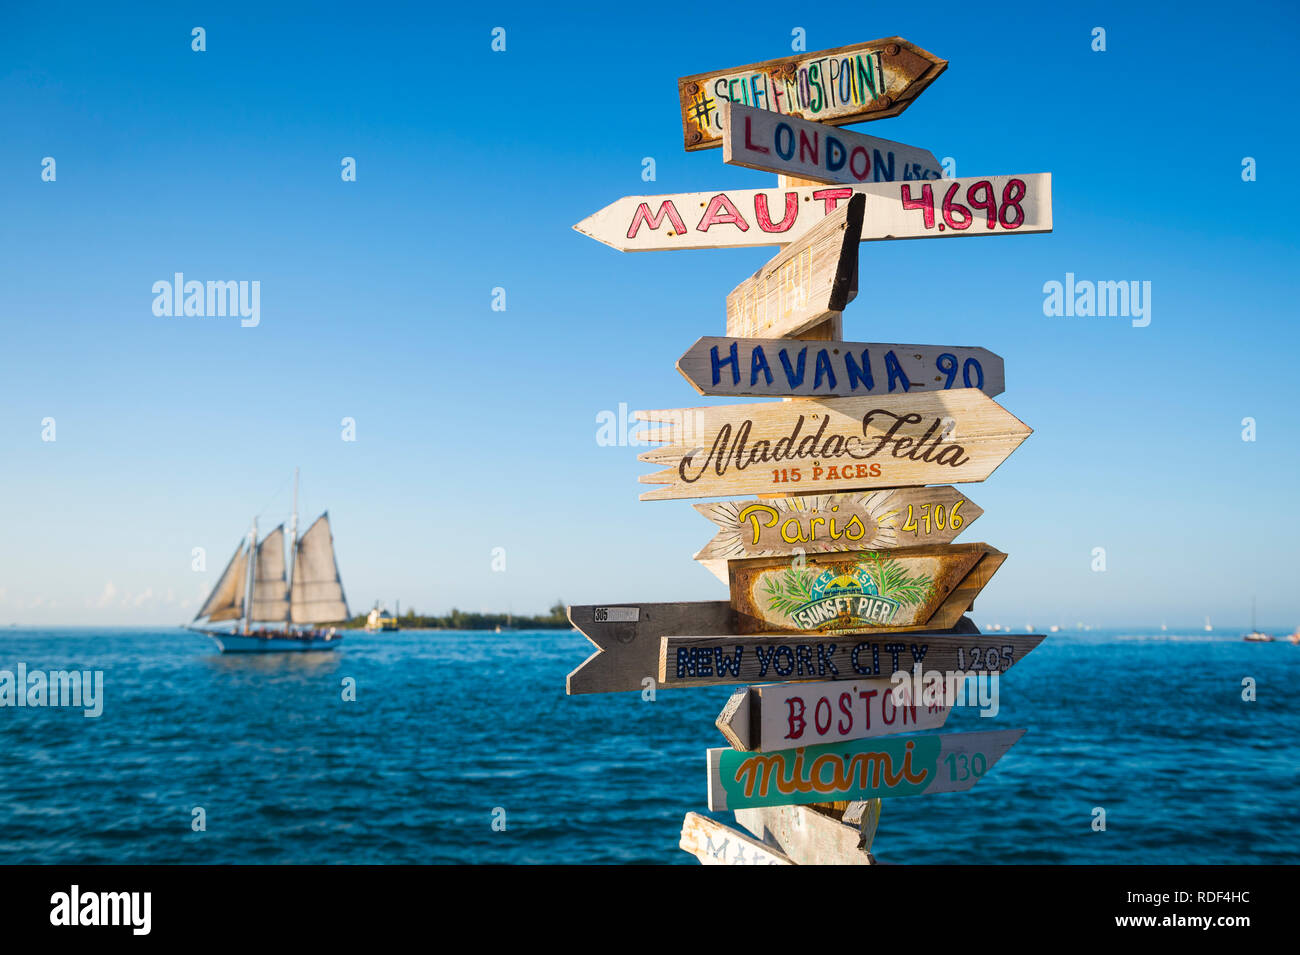 KEY WEST, FLORIDA, USA - JANUARY 13, 2019: A rustic wooden direction sign topped with the message #selfiemostpoint stands on Sunset Pier at Mallory Sq - Stock Image